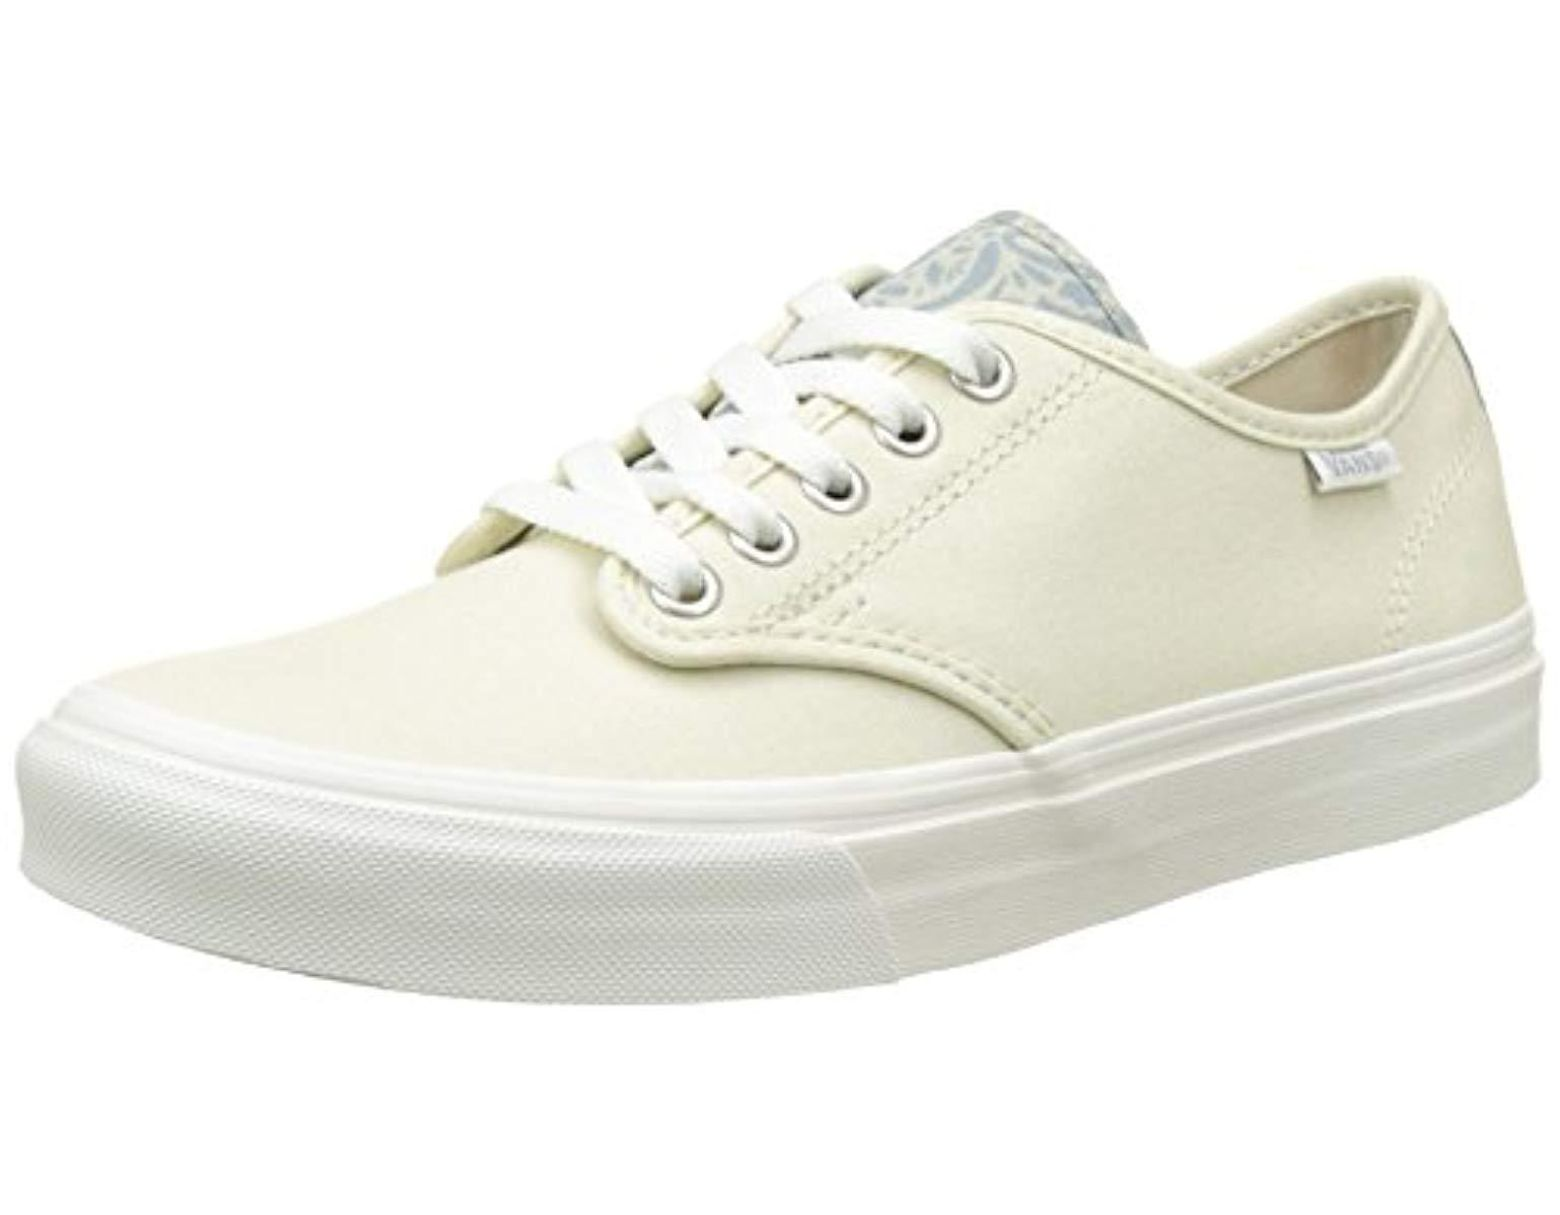 852a1635e4b0a Vans Wm Camden Stripe Low-top Sneakers in White - Save 22% - Lyst